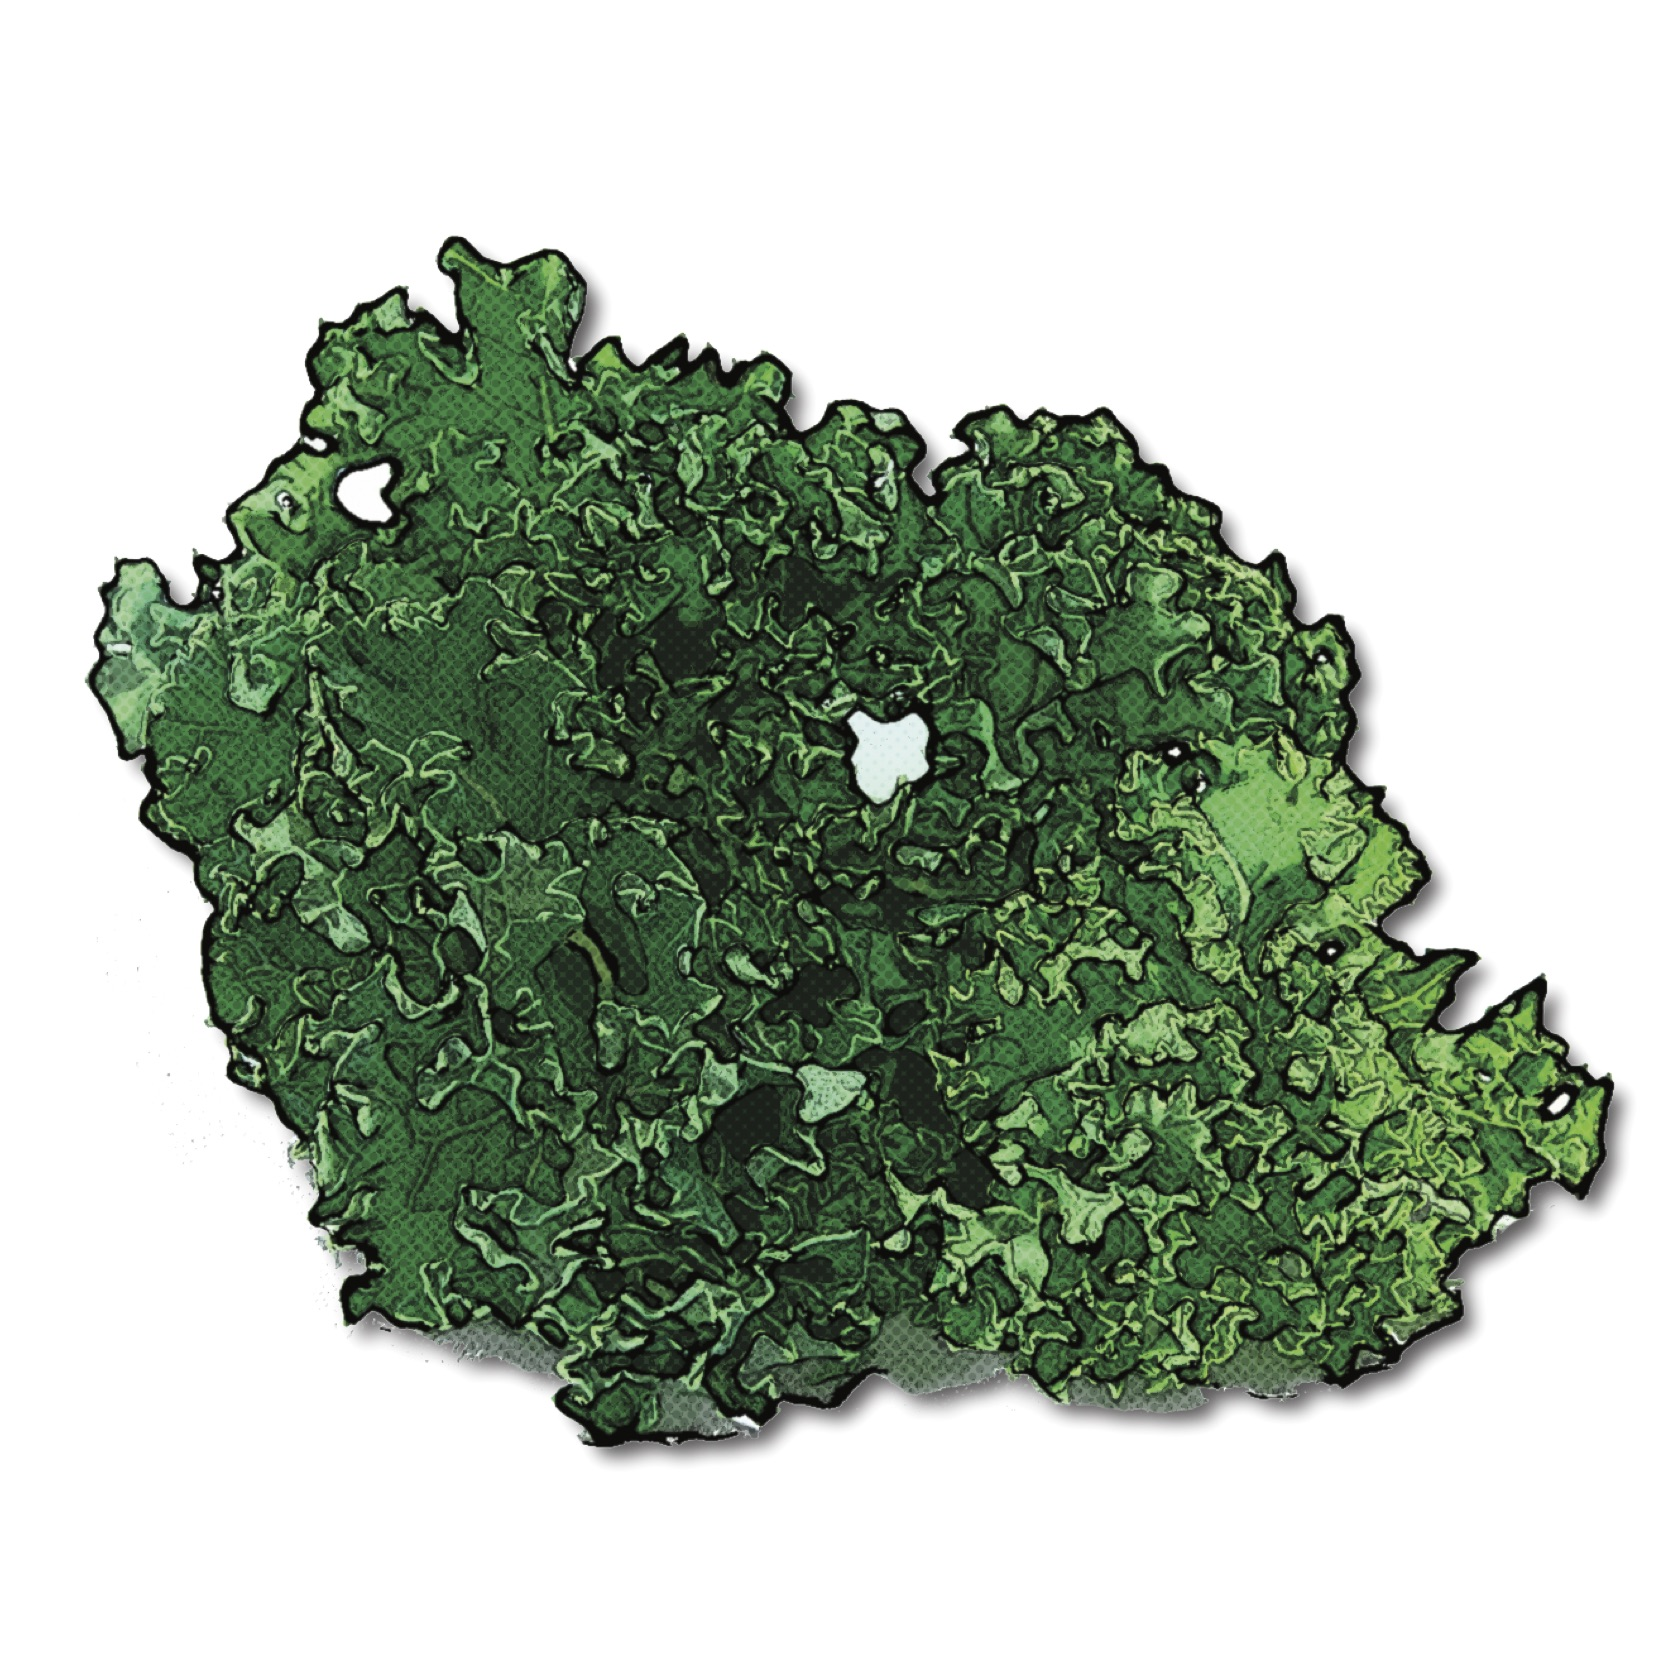 Find Kale Recipes